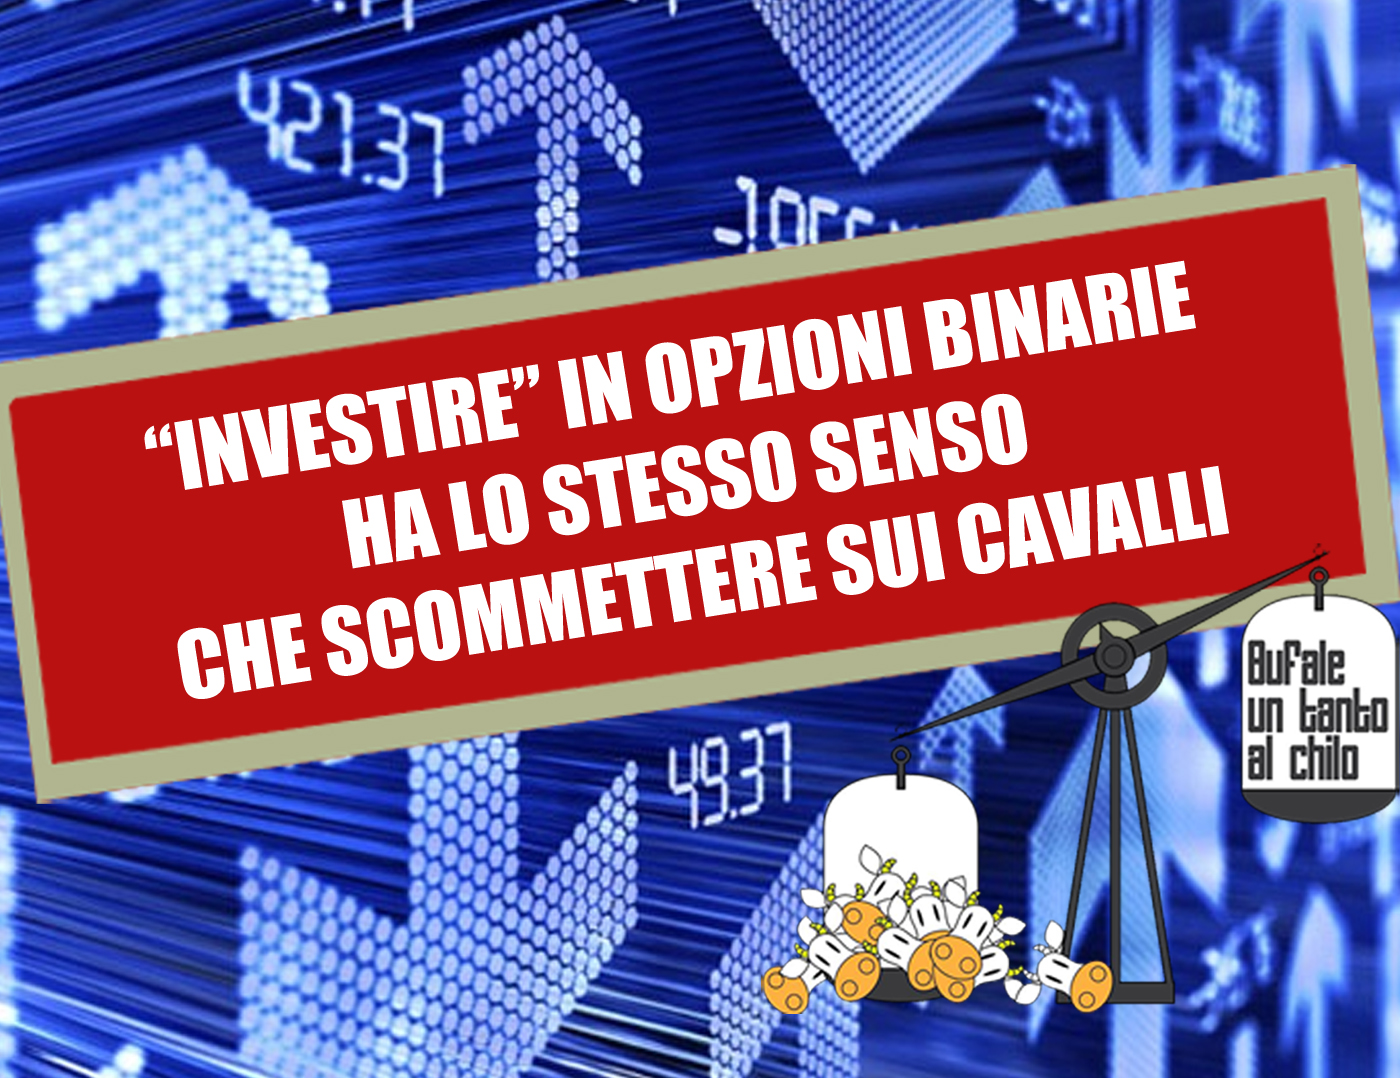 Iqoption trading da 1 euro